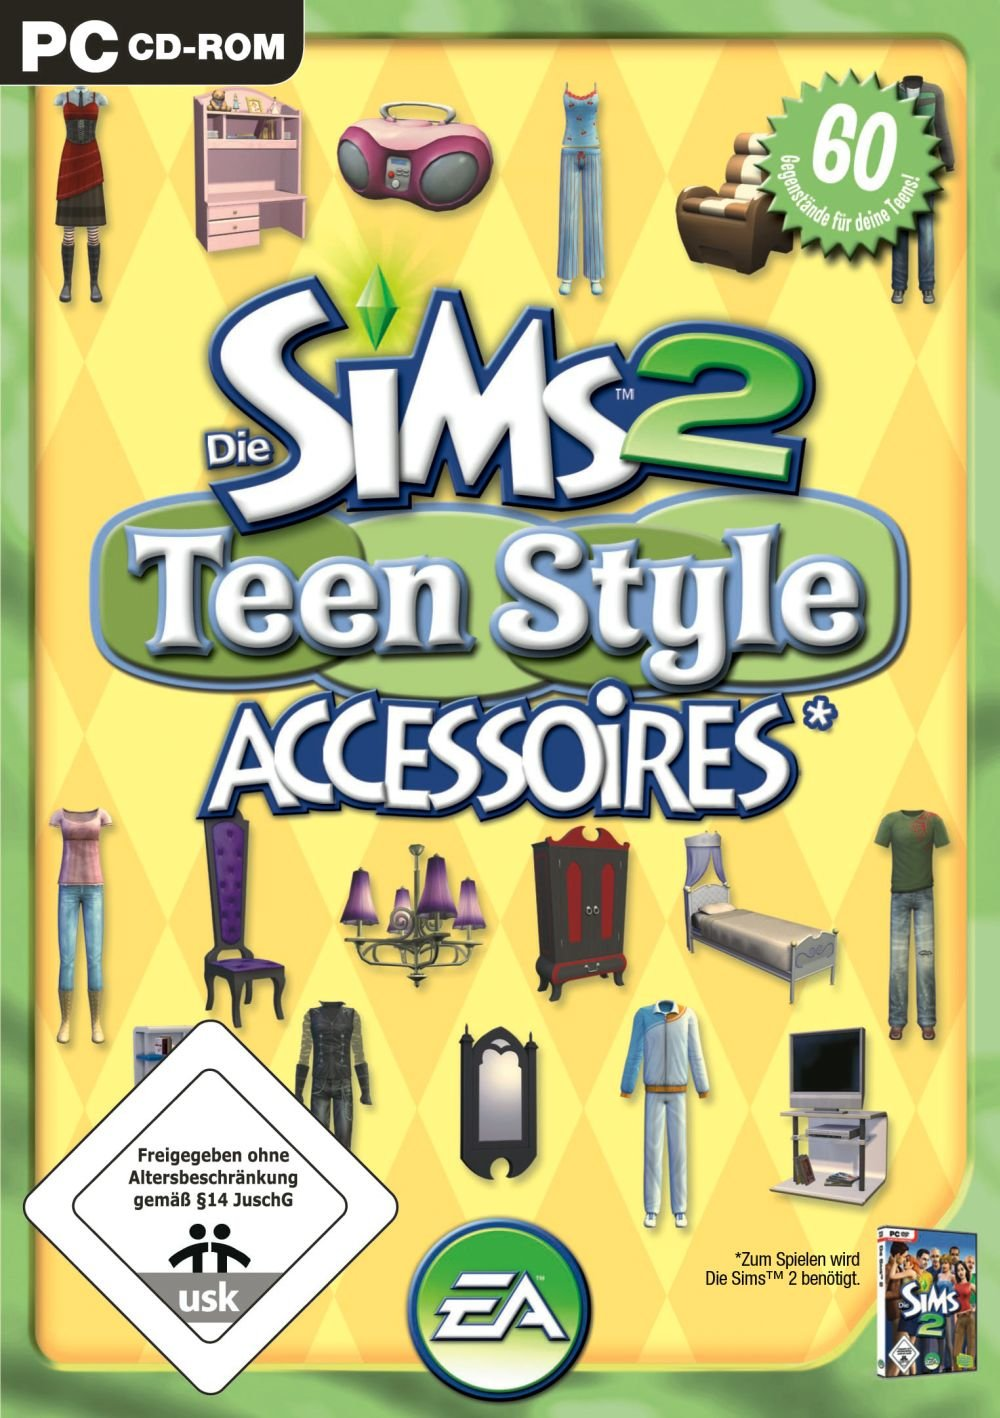 Die Sims 2 - Teen Style Accessoires (Add-On): Amazon.de: Games